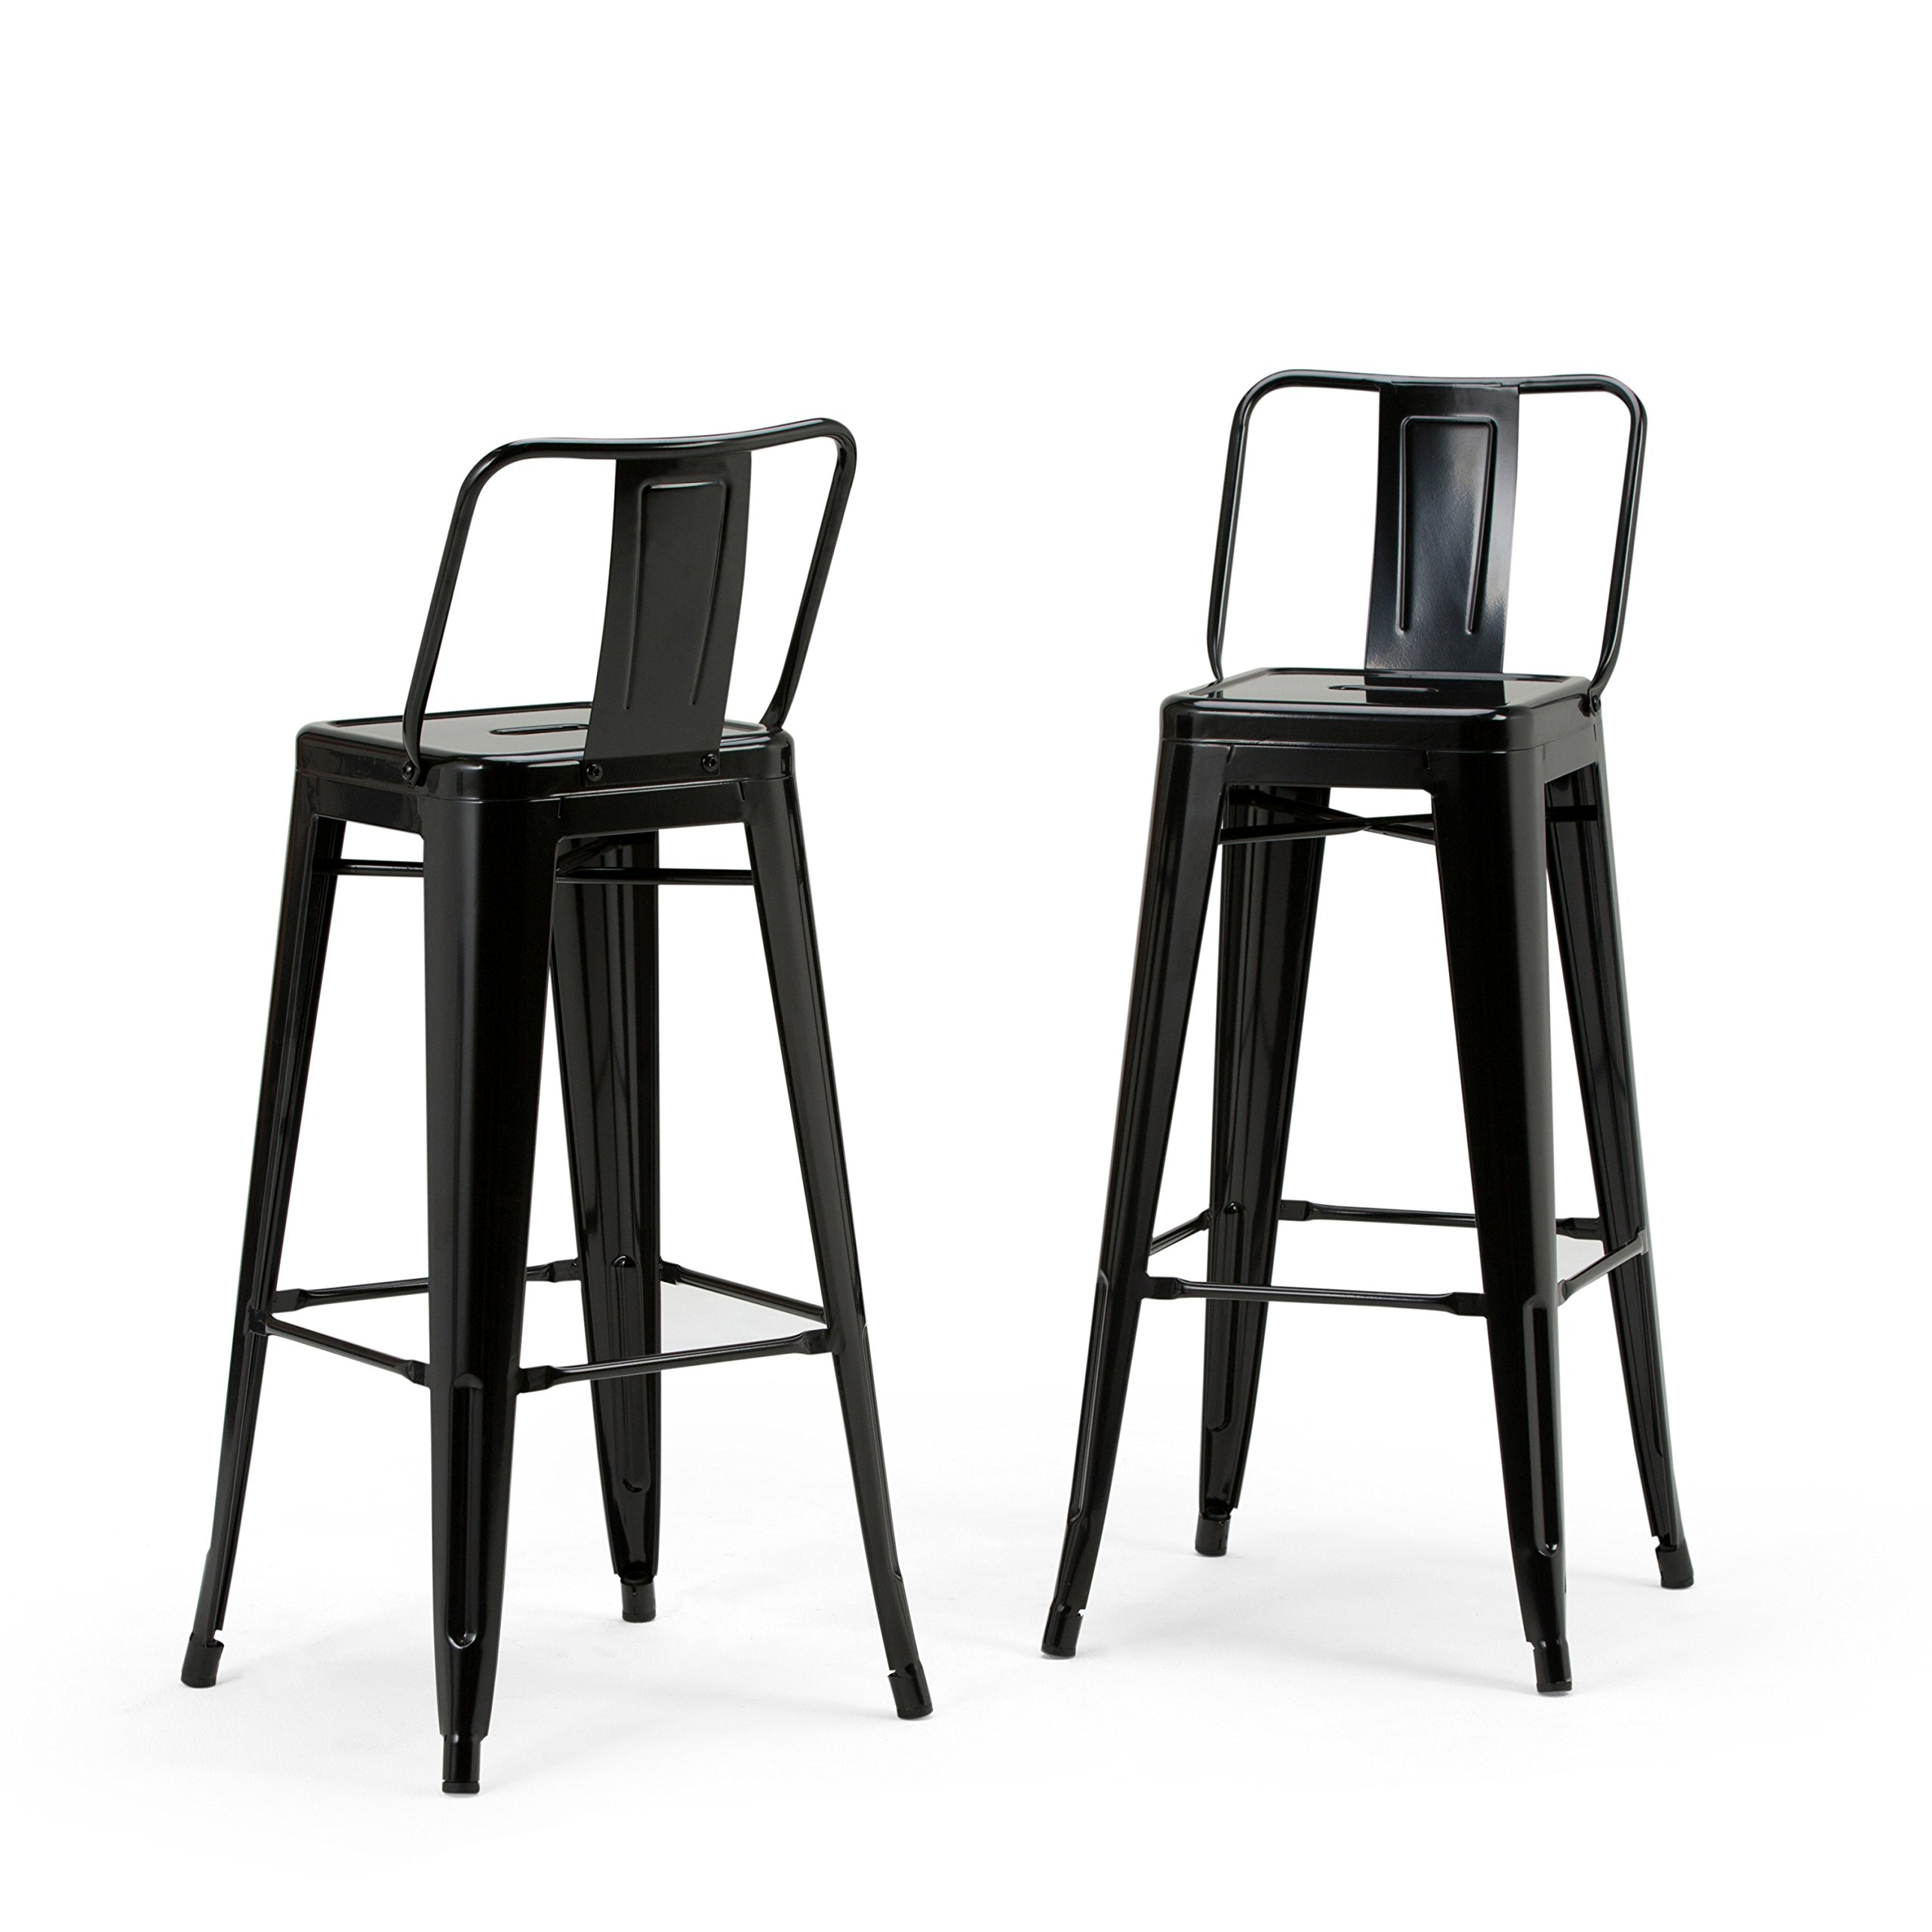 Simpli Home Rayne 30 inch Metal Bar Stool, Black (Set of 2)